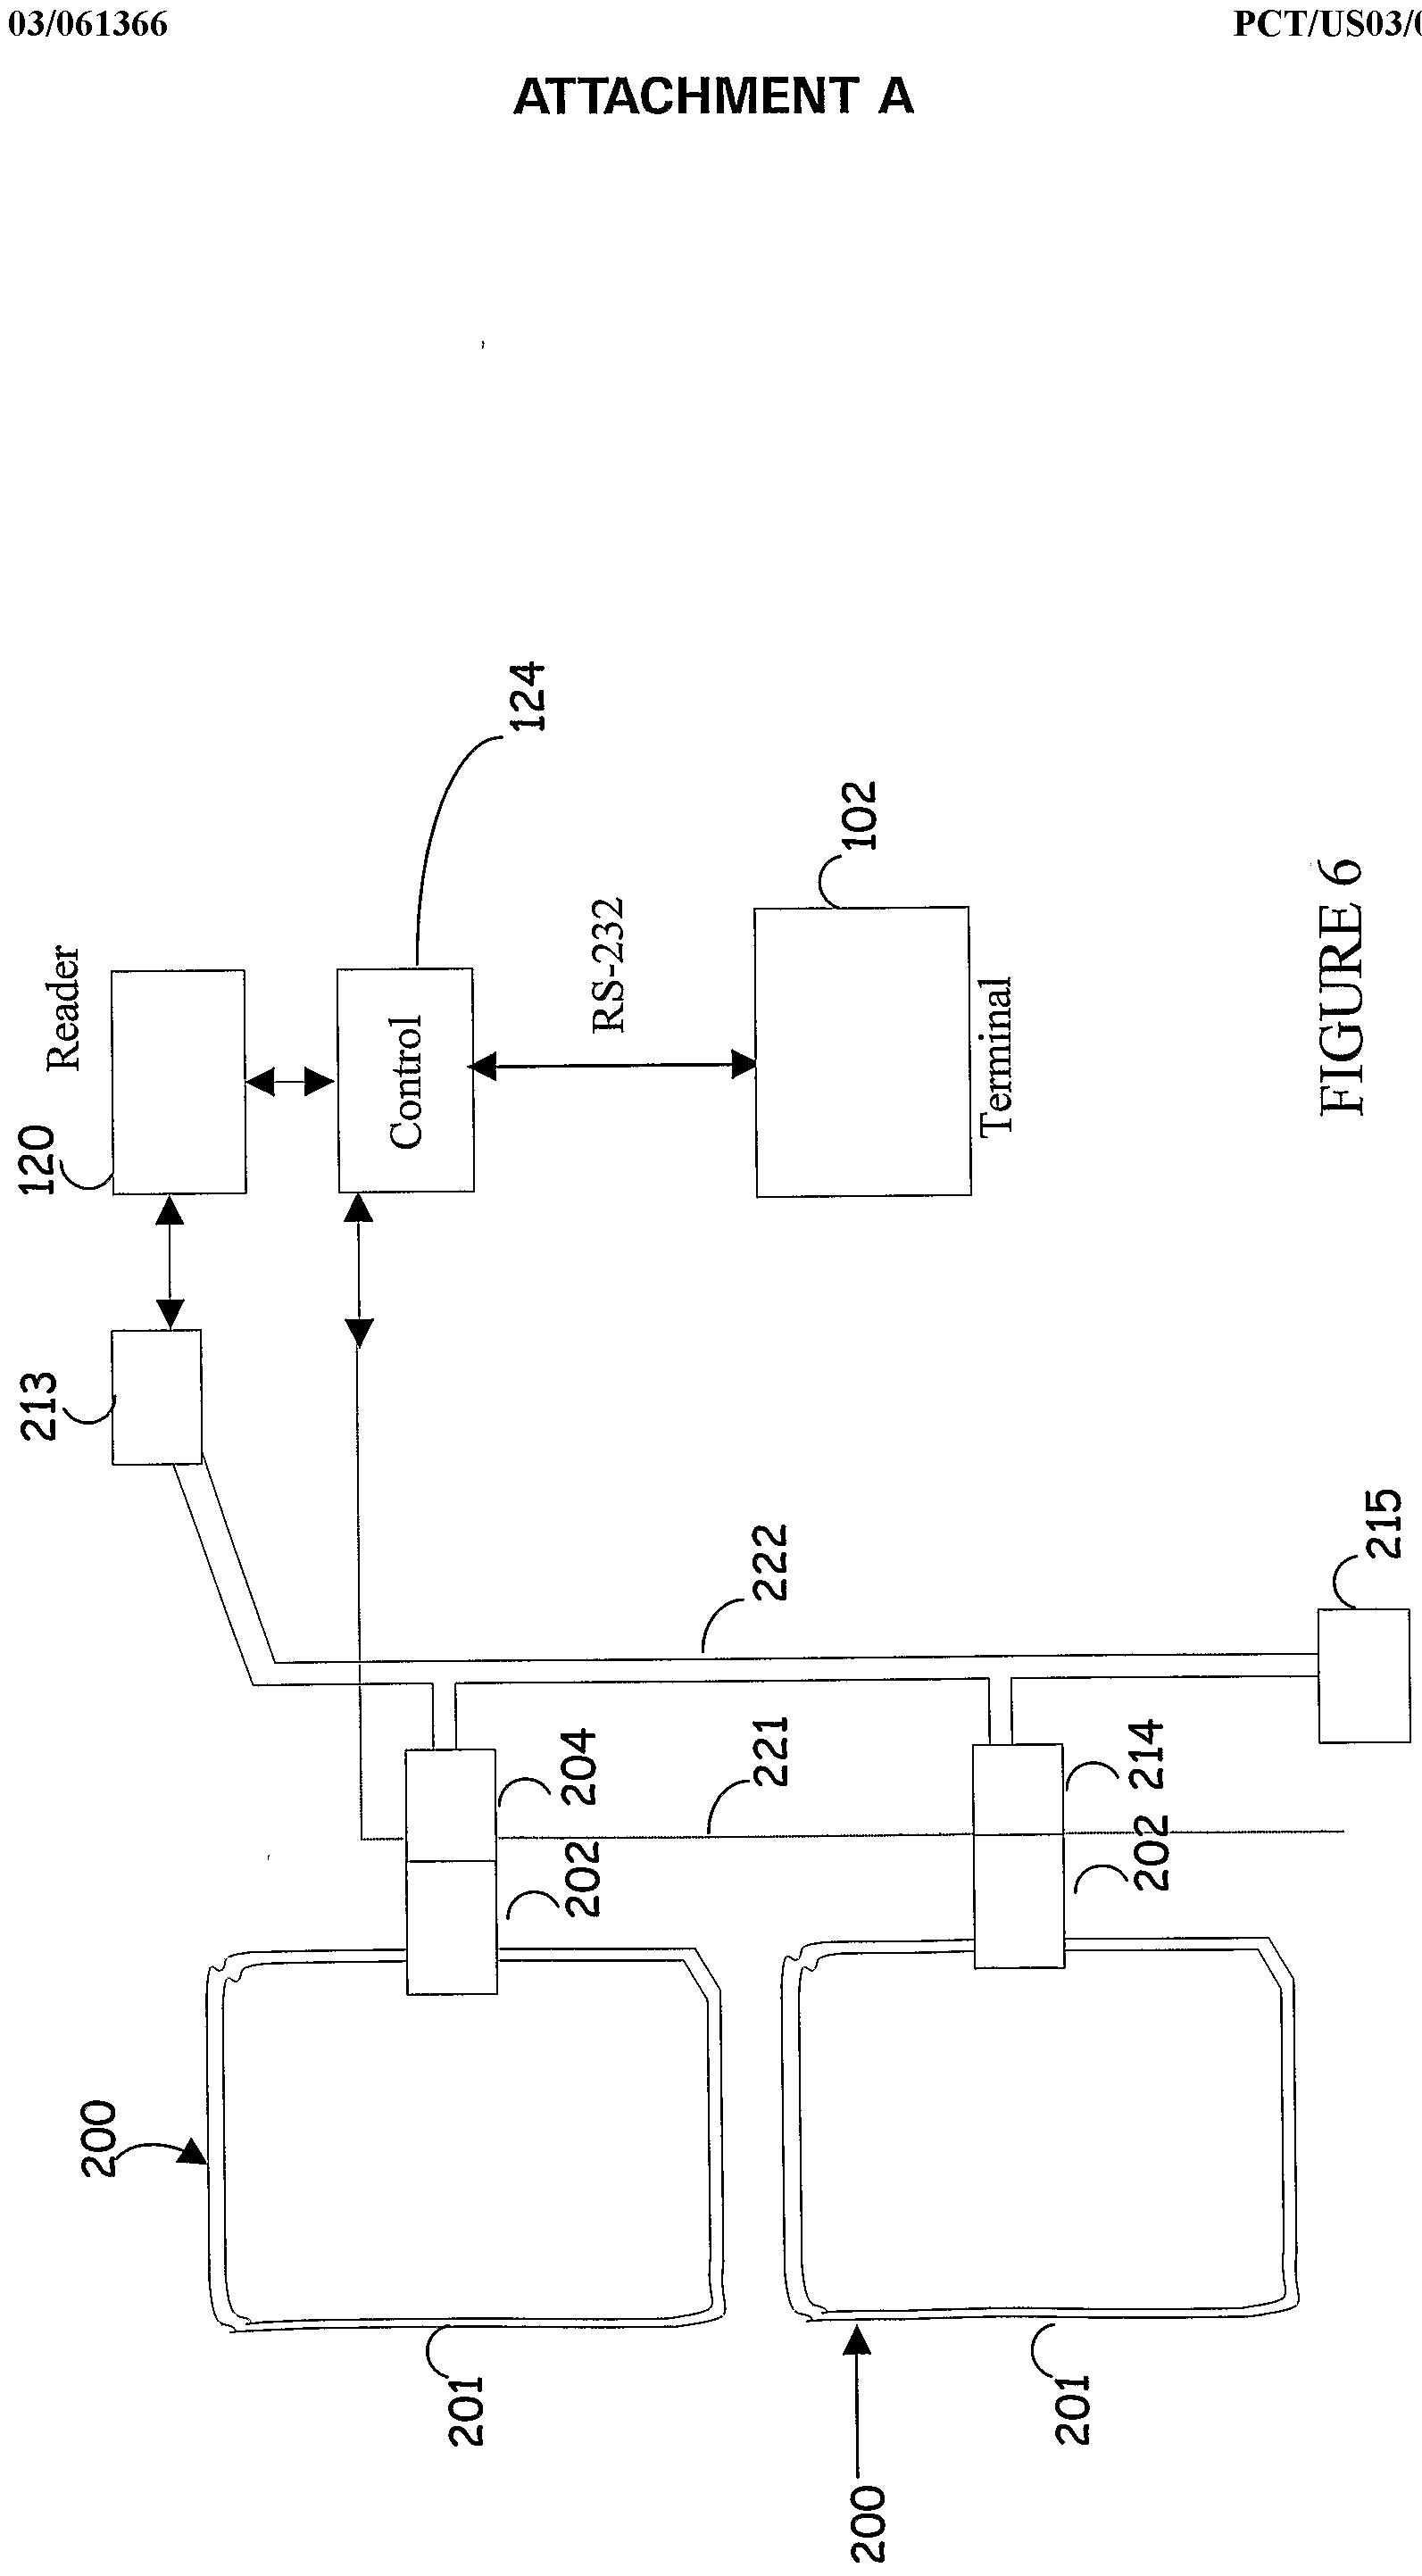 WO2003061366A2 - Inventory management system - Google Patents on